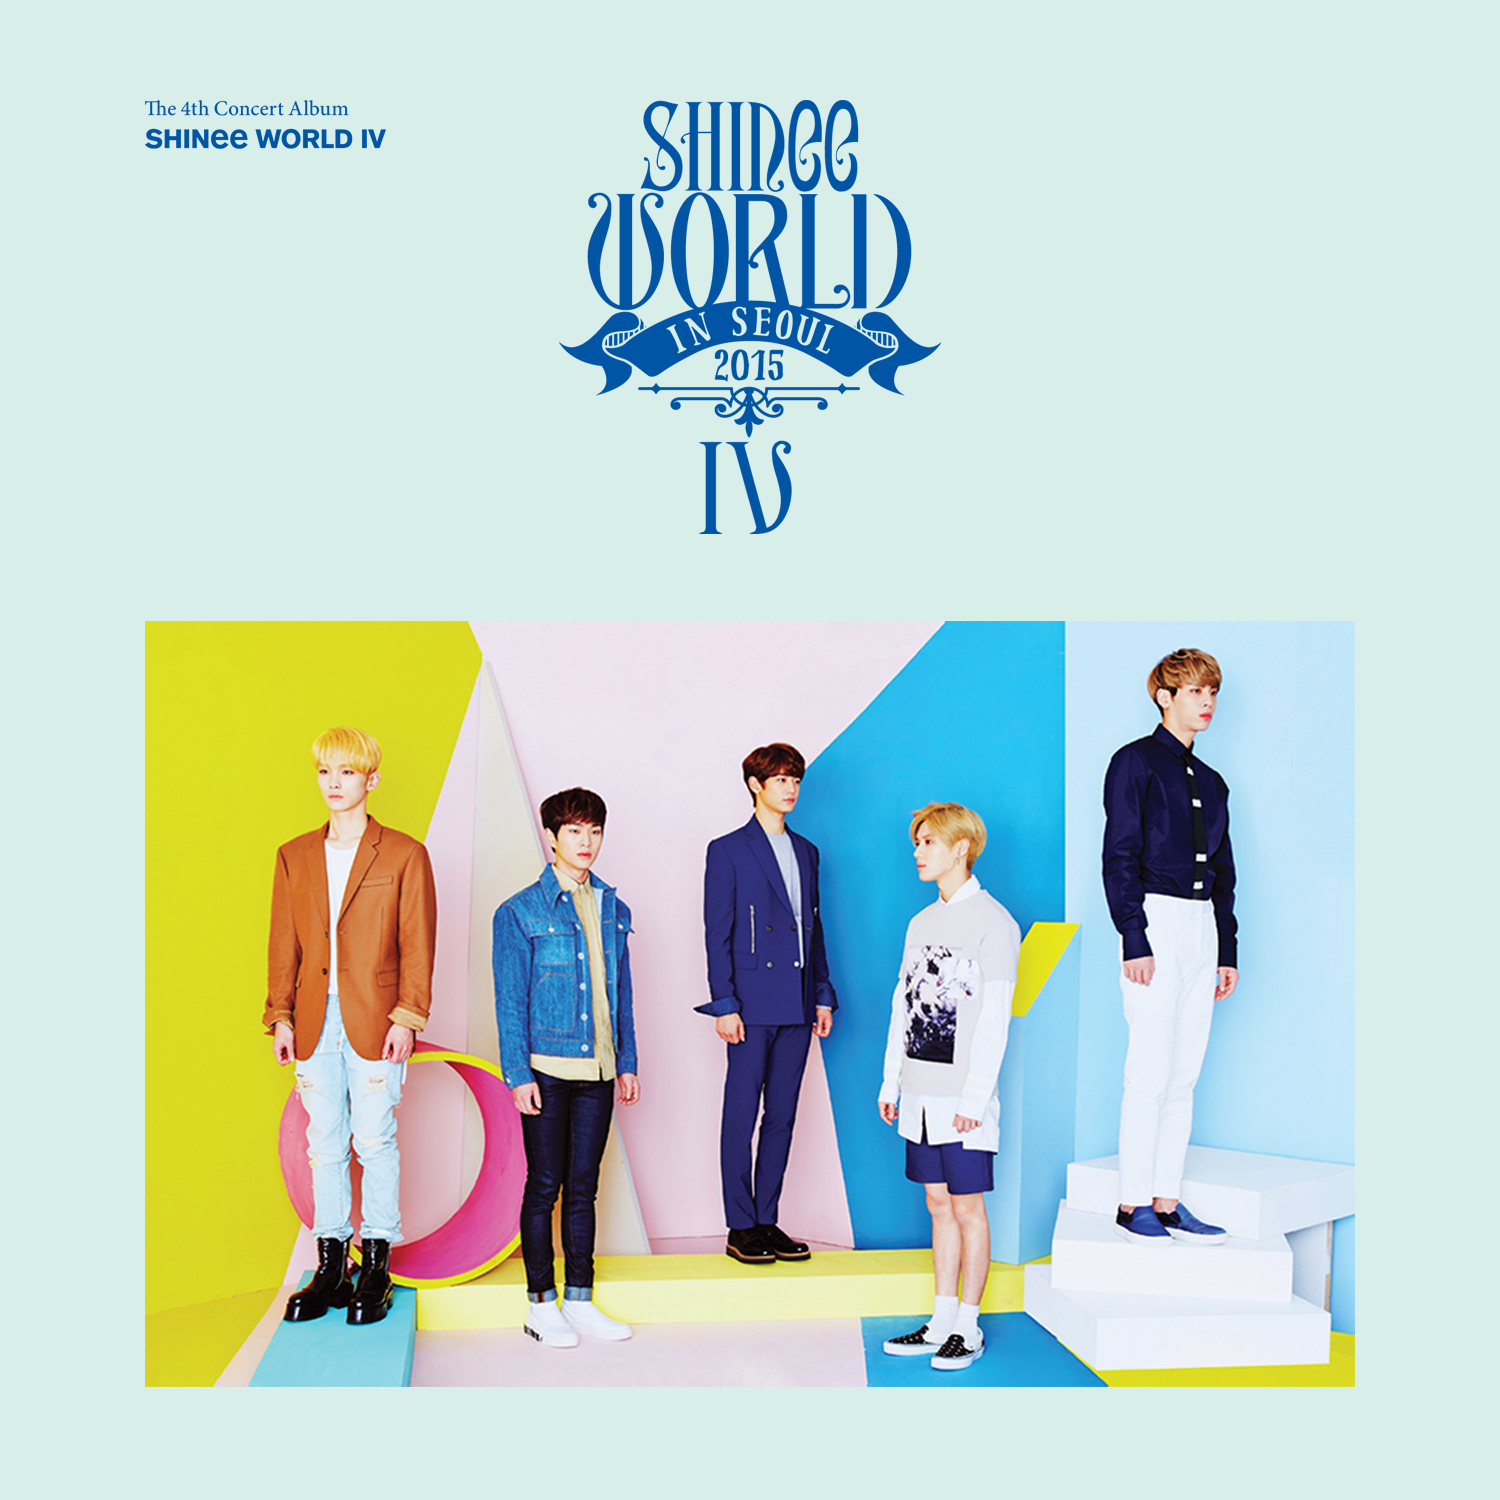 SHINee - SHINee WORLD IV [Concert Album] DOWNLOAD by Asian